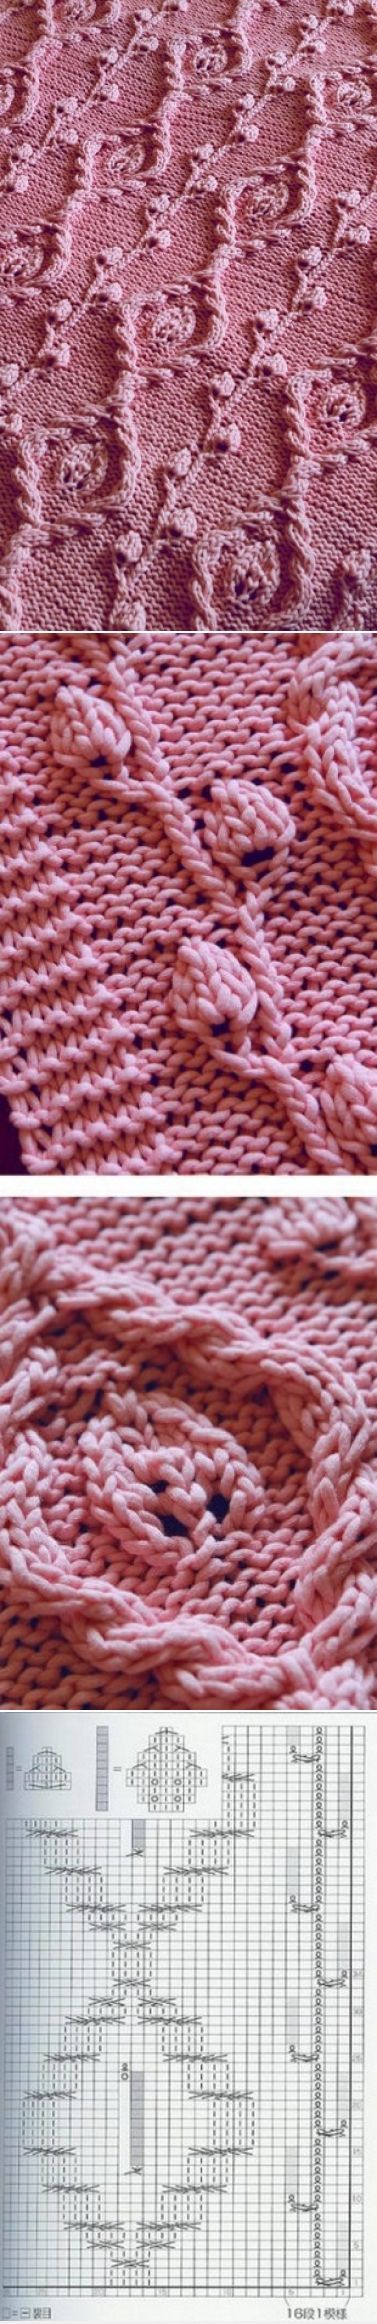 An intricate Aran pattern where the lines are curvy and flowing. Reminds me of a heavy fabric with woven pattern ~ rose damask